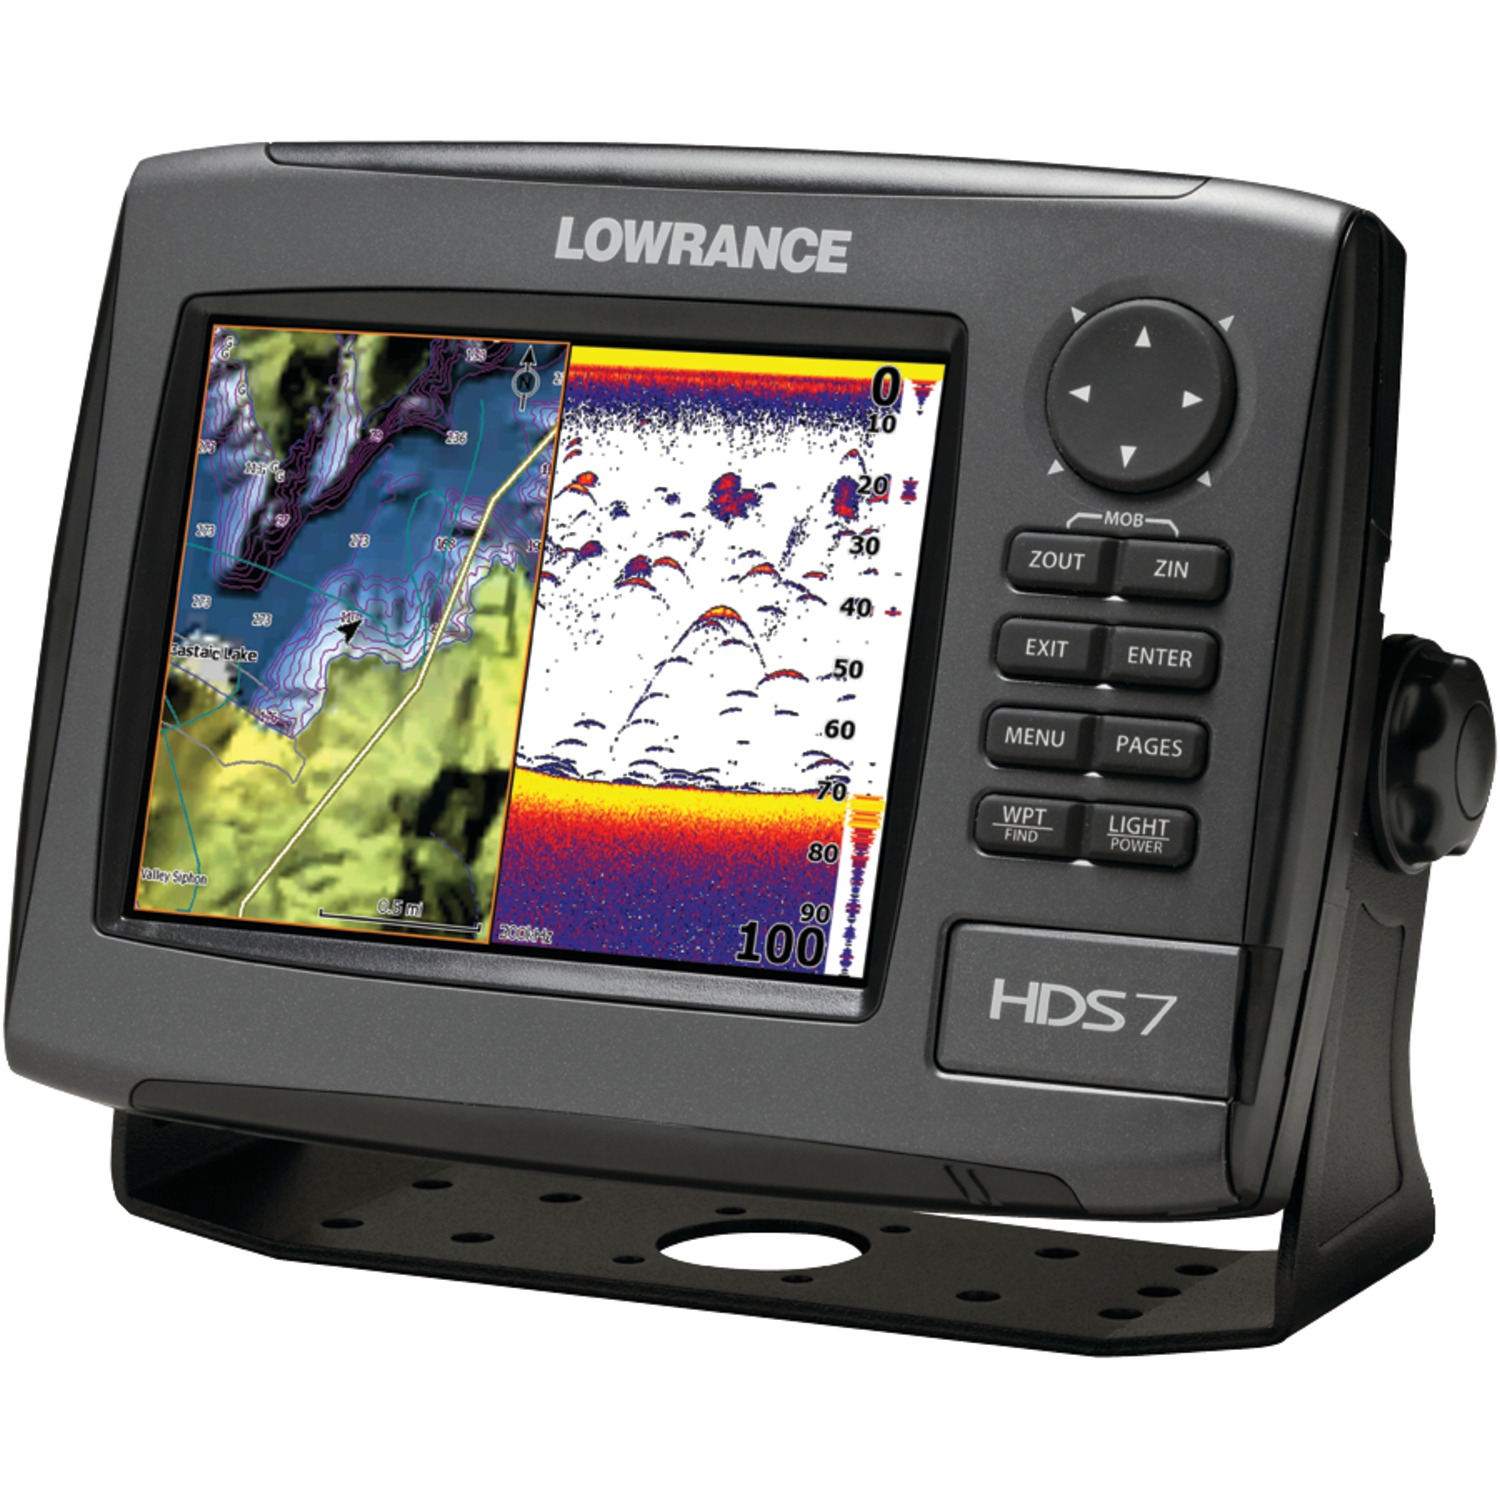 lowrance 000 10530 001 hds 7 gen2 fishfinder chartplotter with lake insight tm 83 200khz. Black Bedroom Furniture Sets. Home Design Ideas